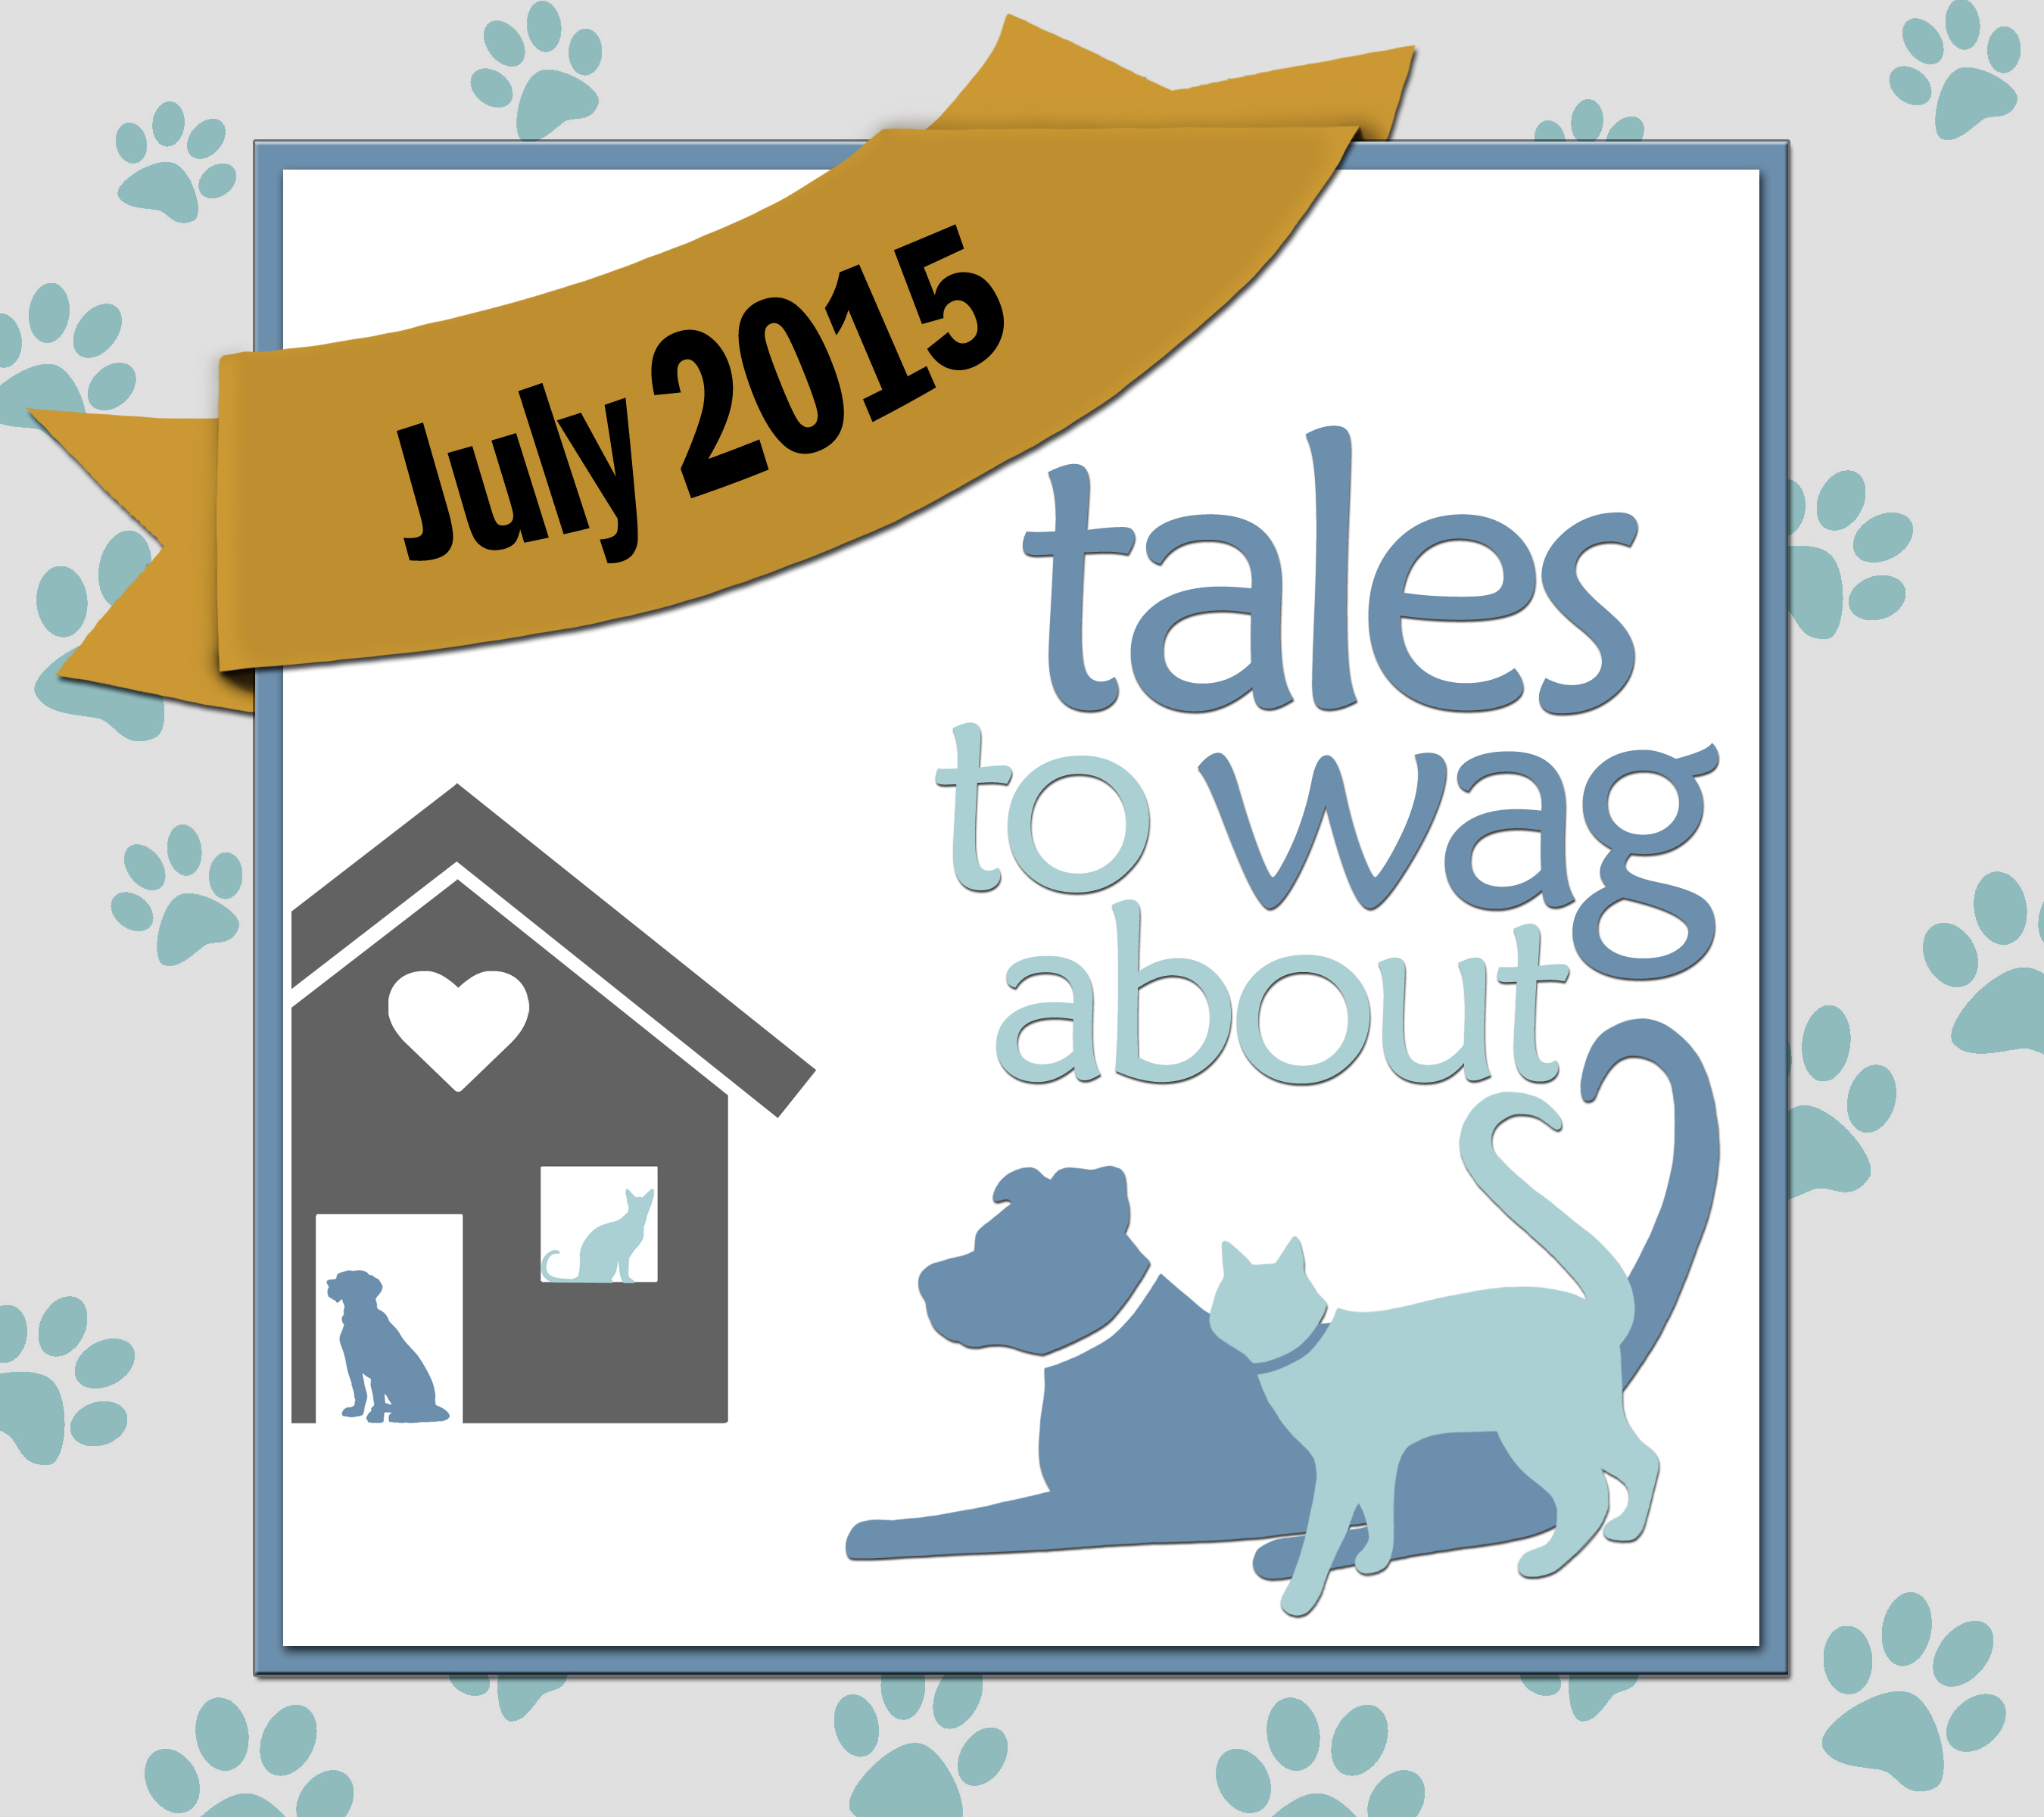 Tales to Wag About - July 2015